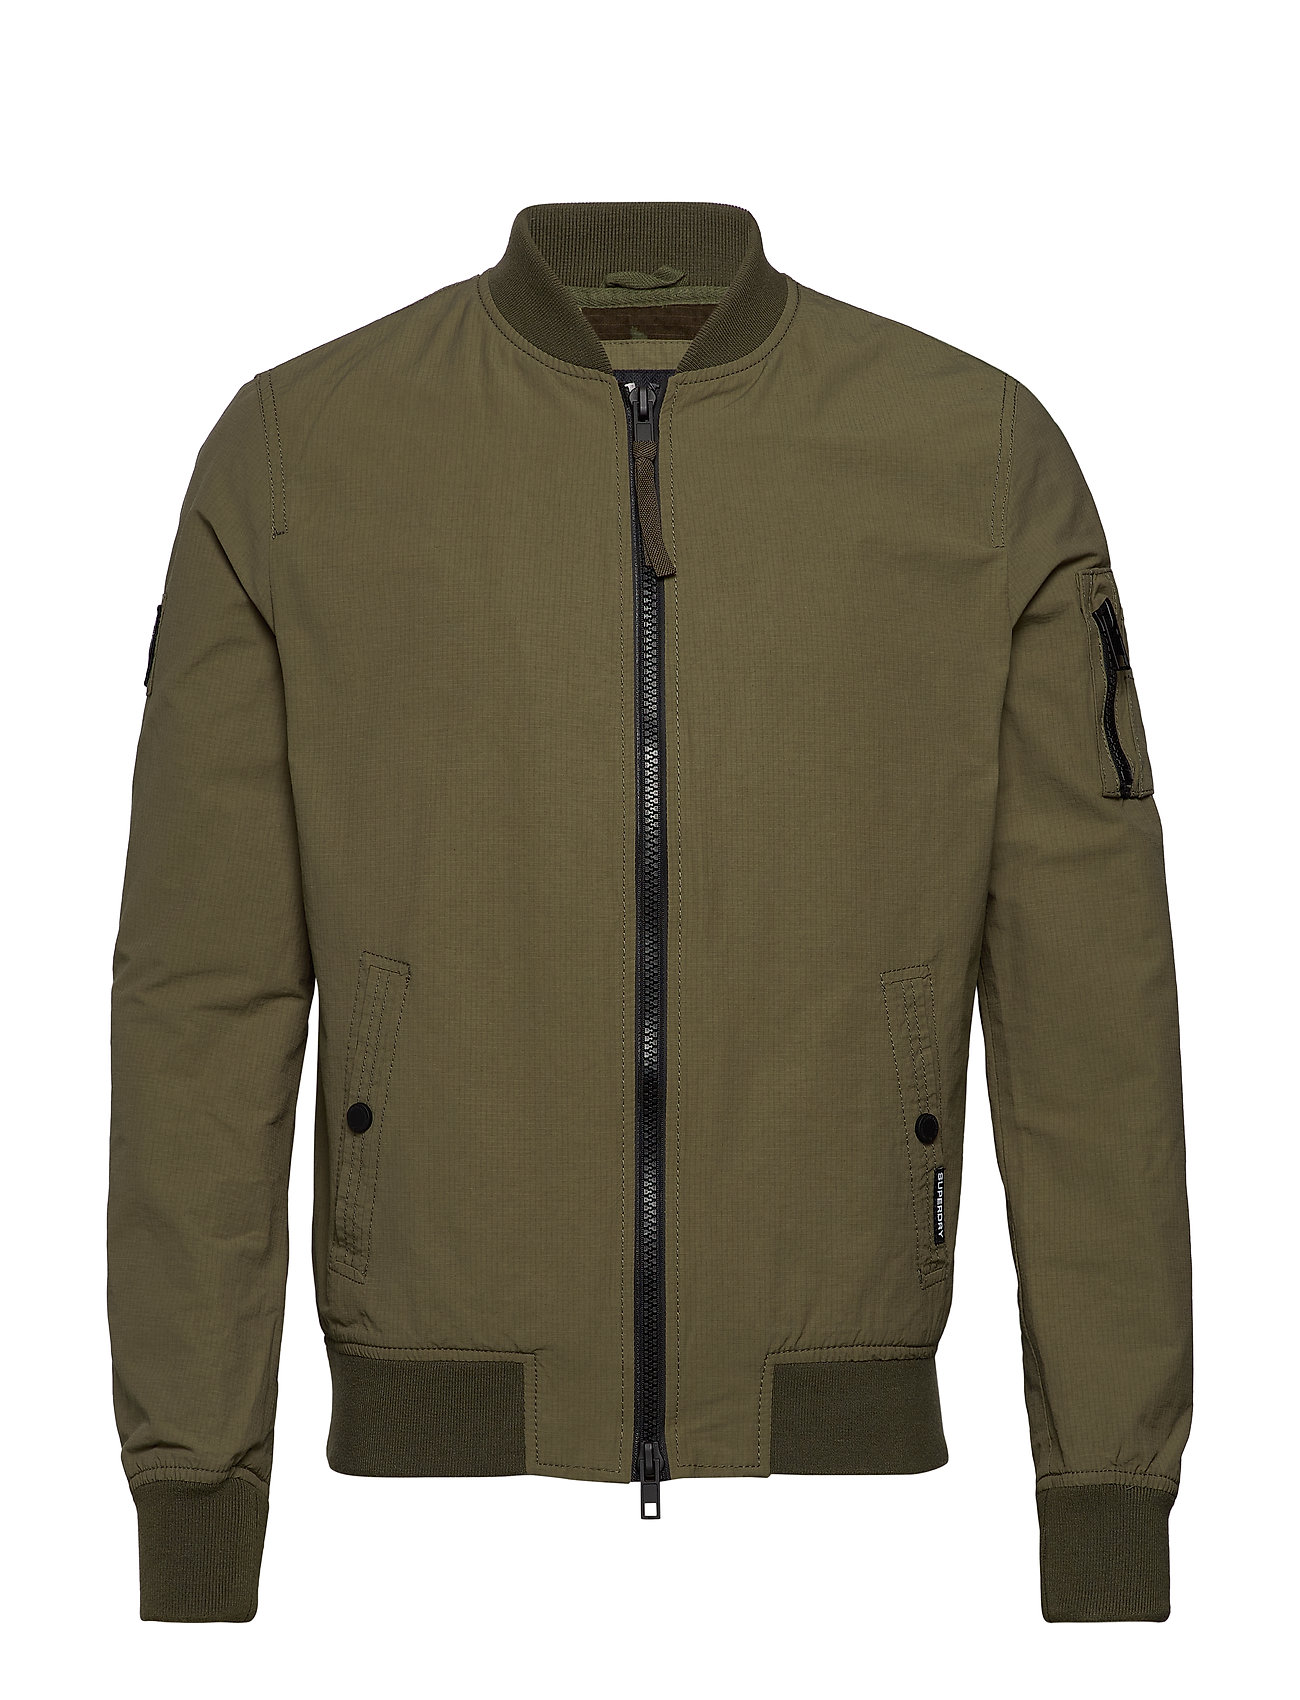 Superdry ROOKIE AIR CORPS BOMBER - SAGE KHAKI